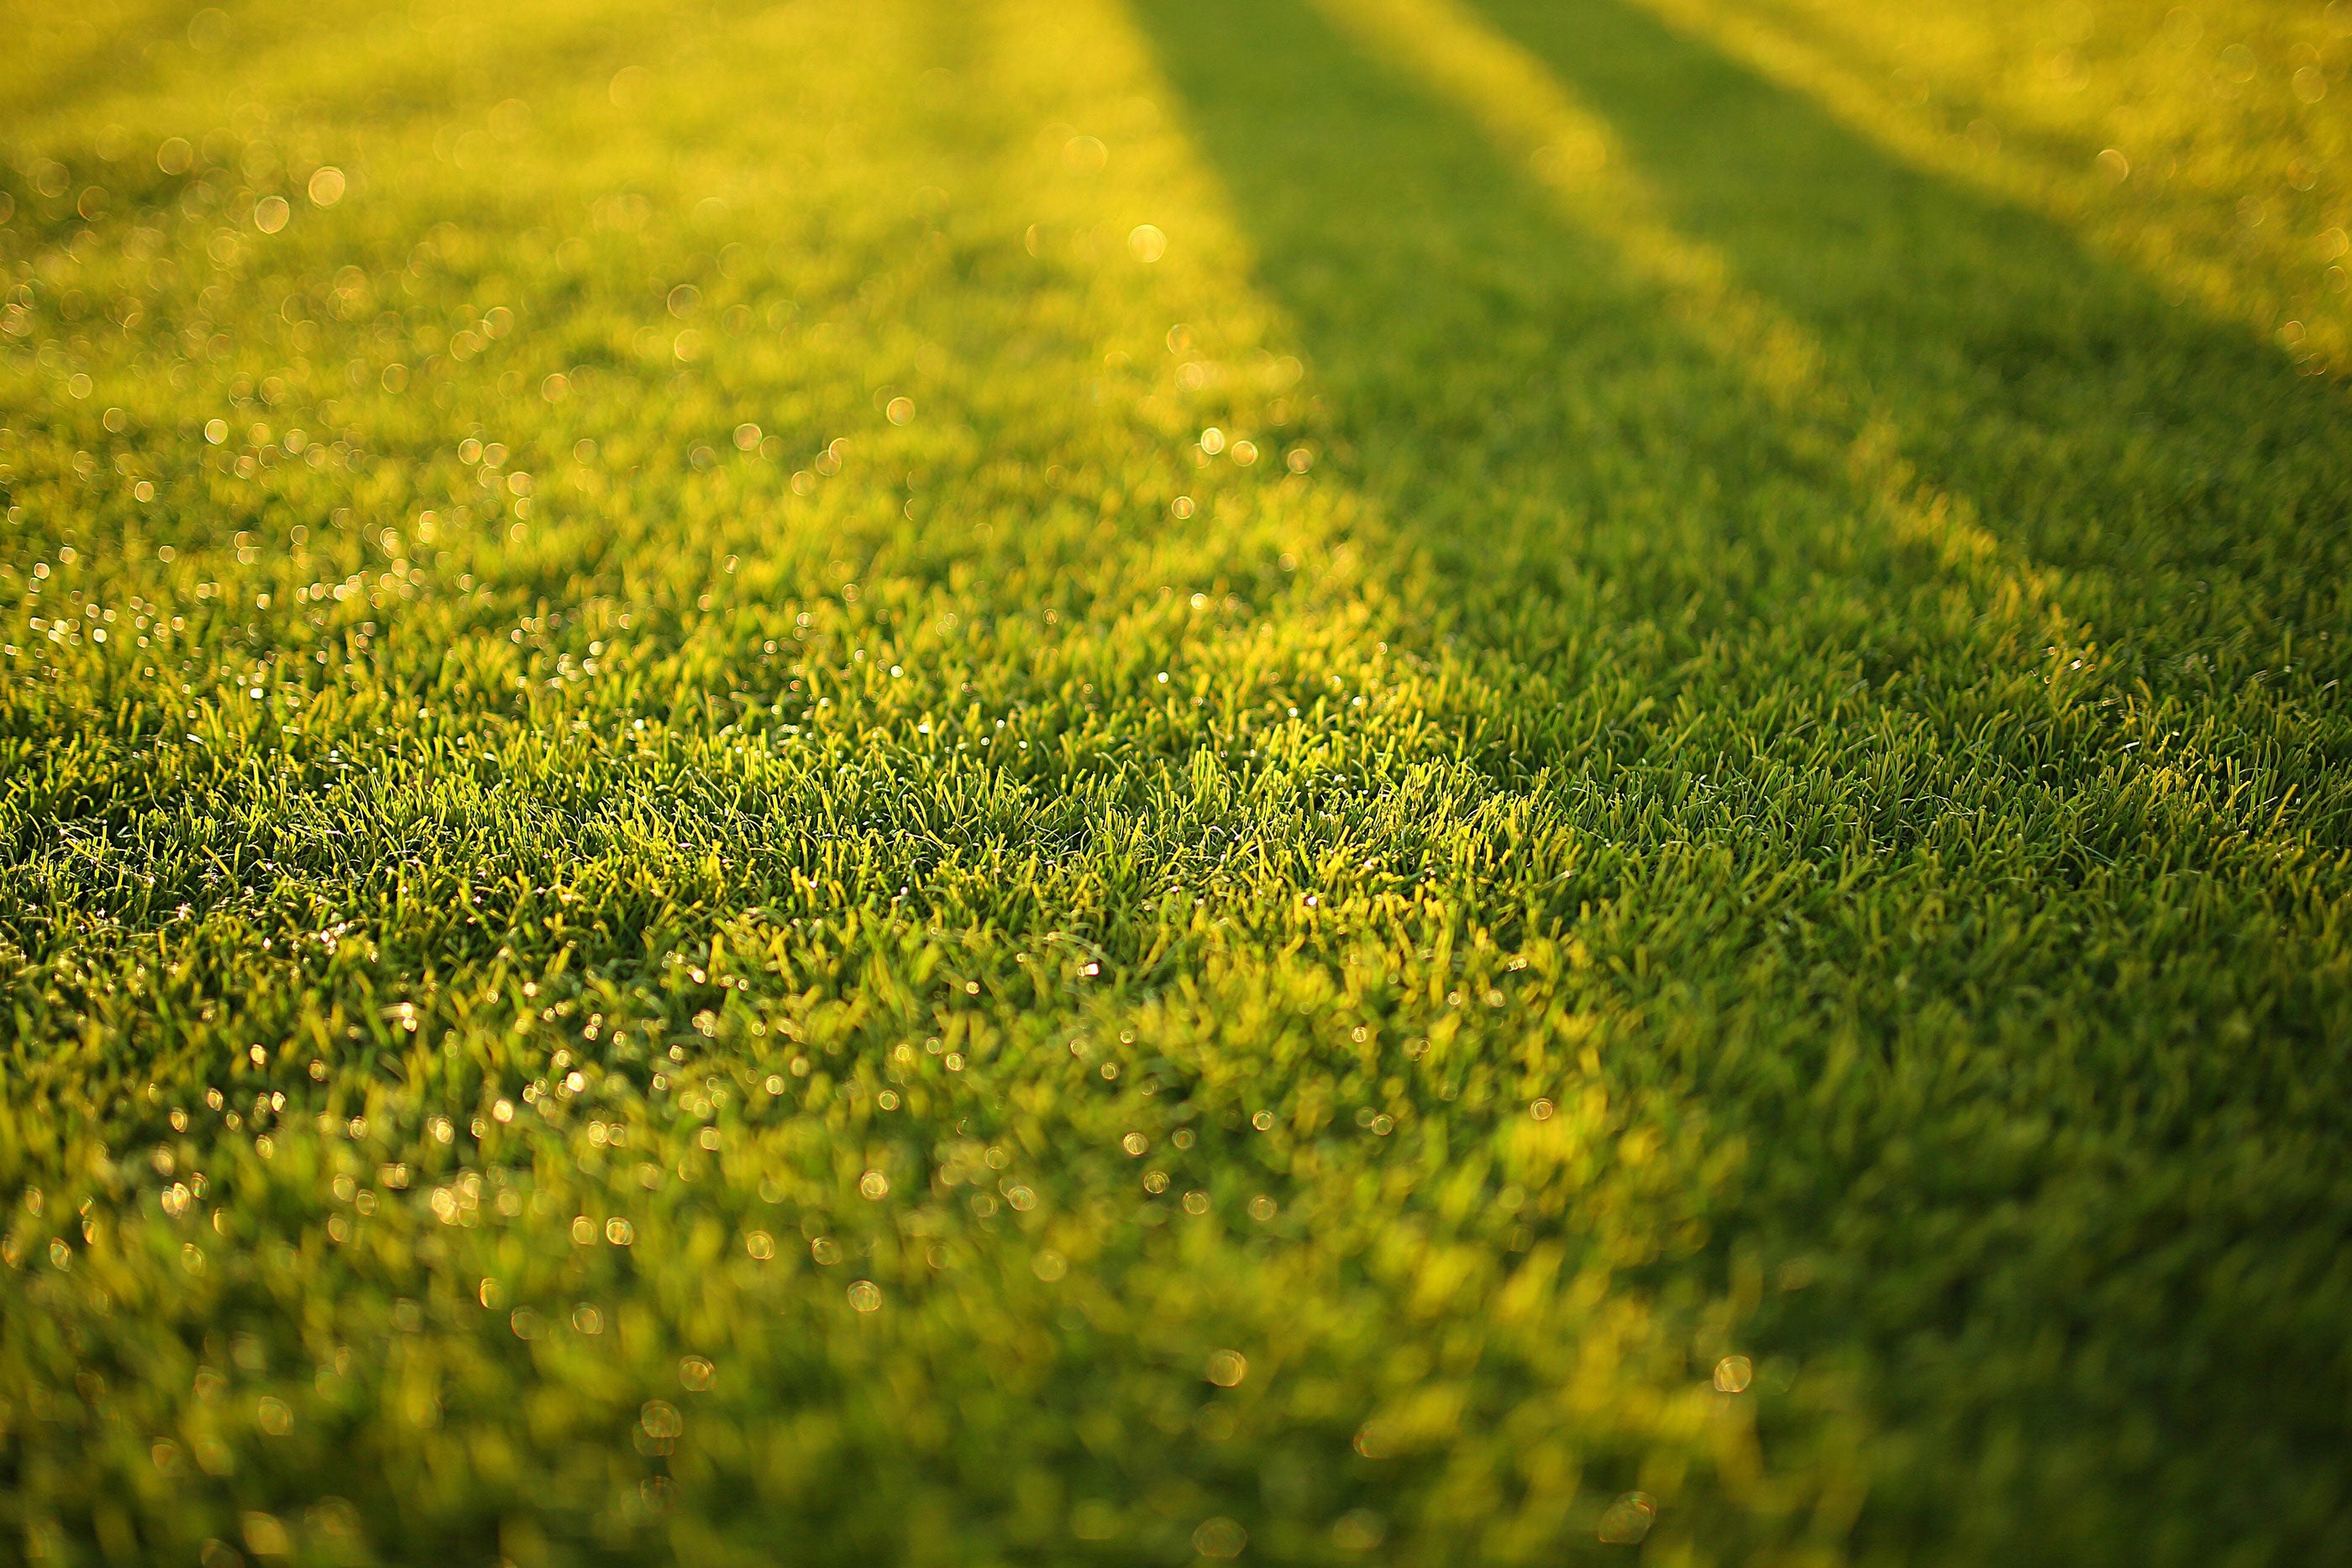 a picture of a lawn